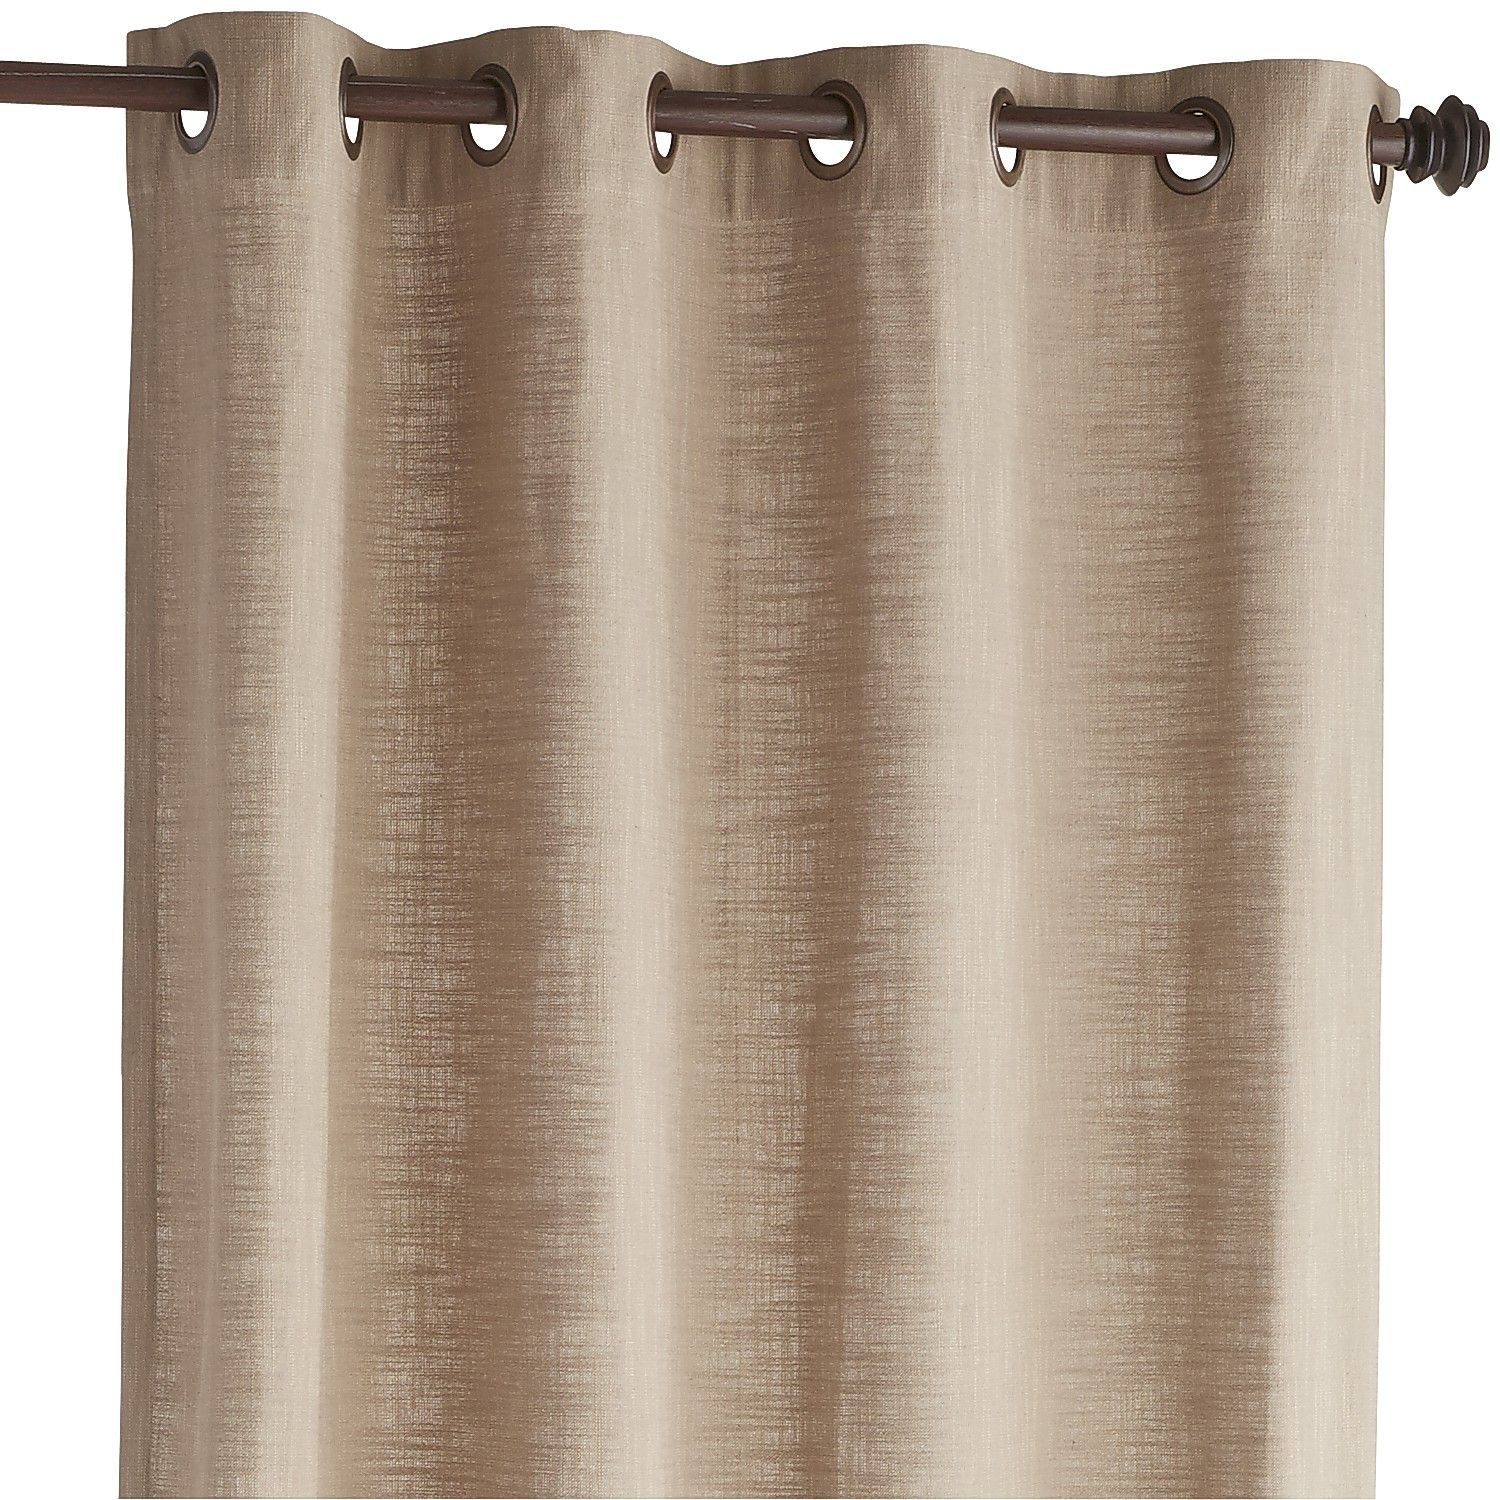 Tan Cassidy Chambray Curtain - Taupe 84""